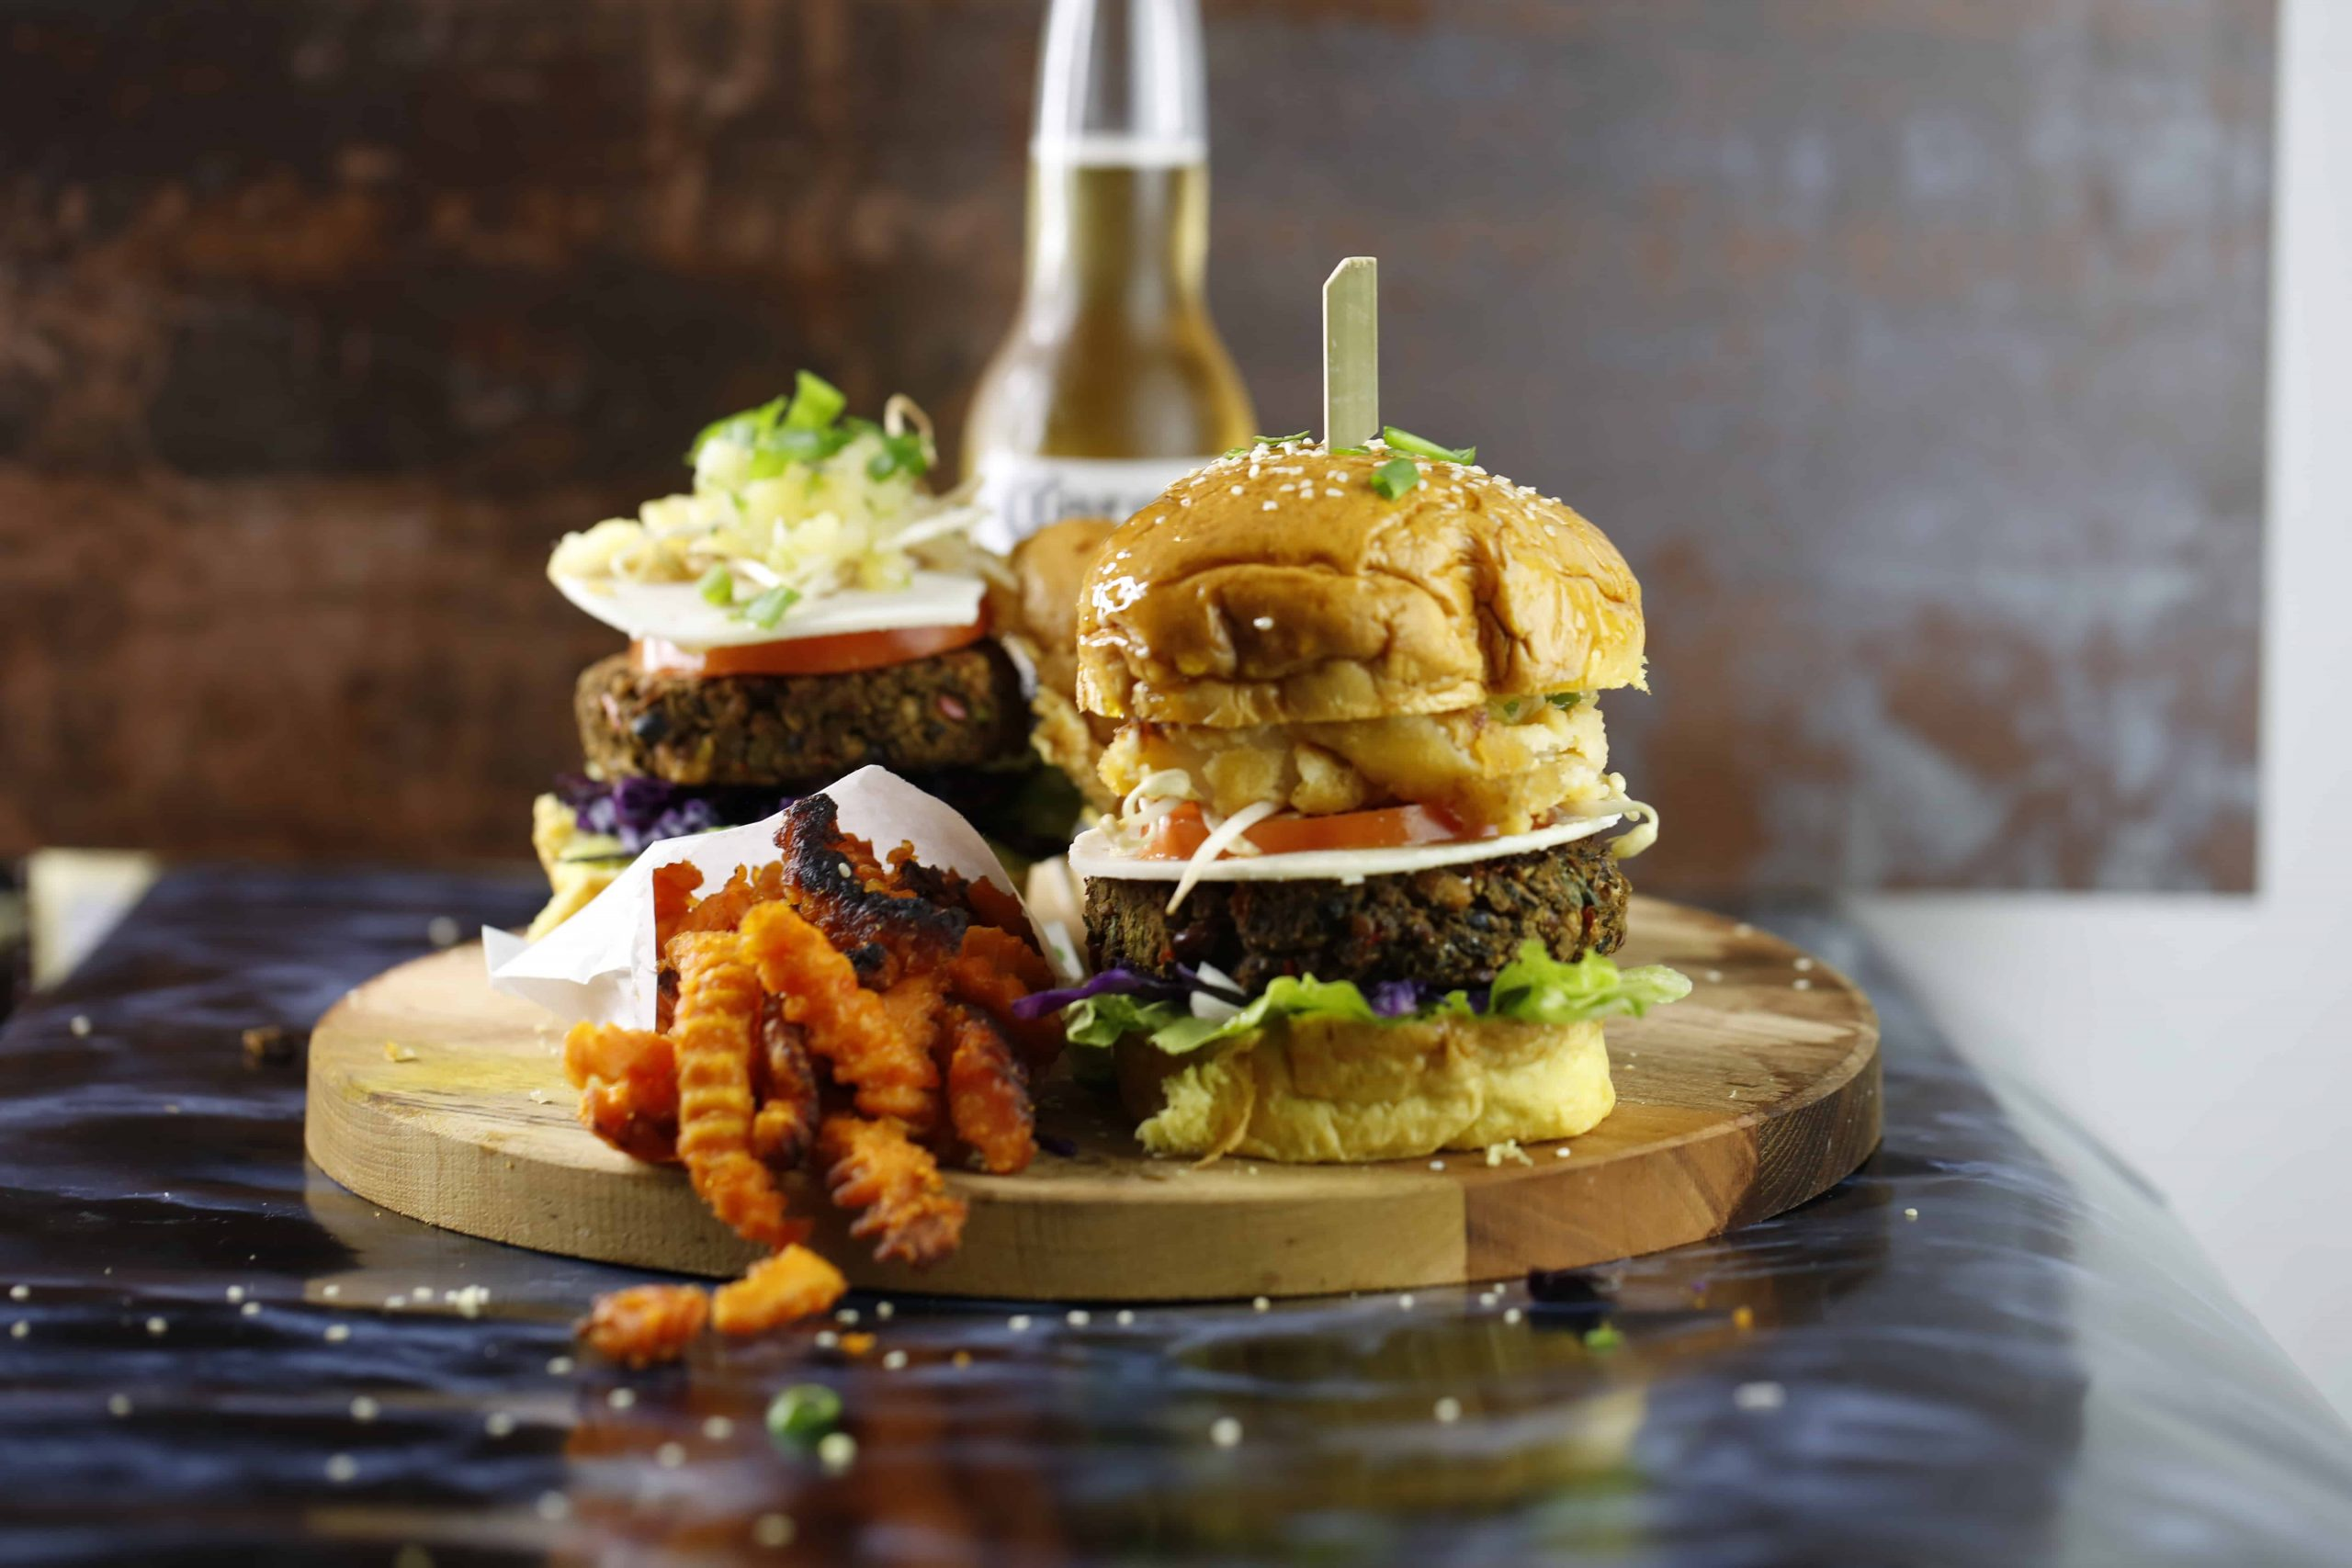 This Is The Best Veggie Burger Ever, Served With A Pineapple Twist